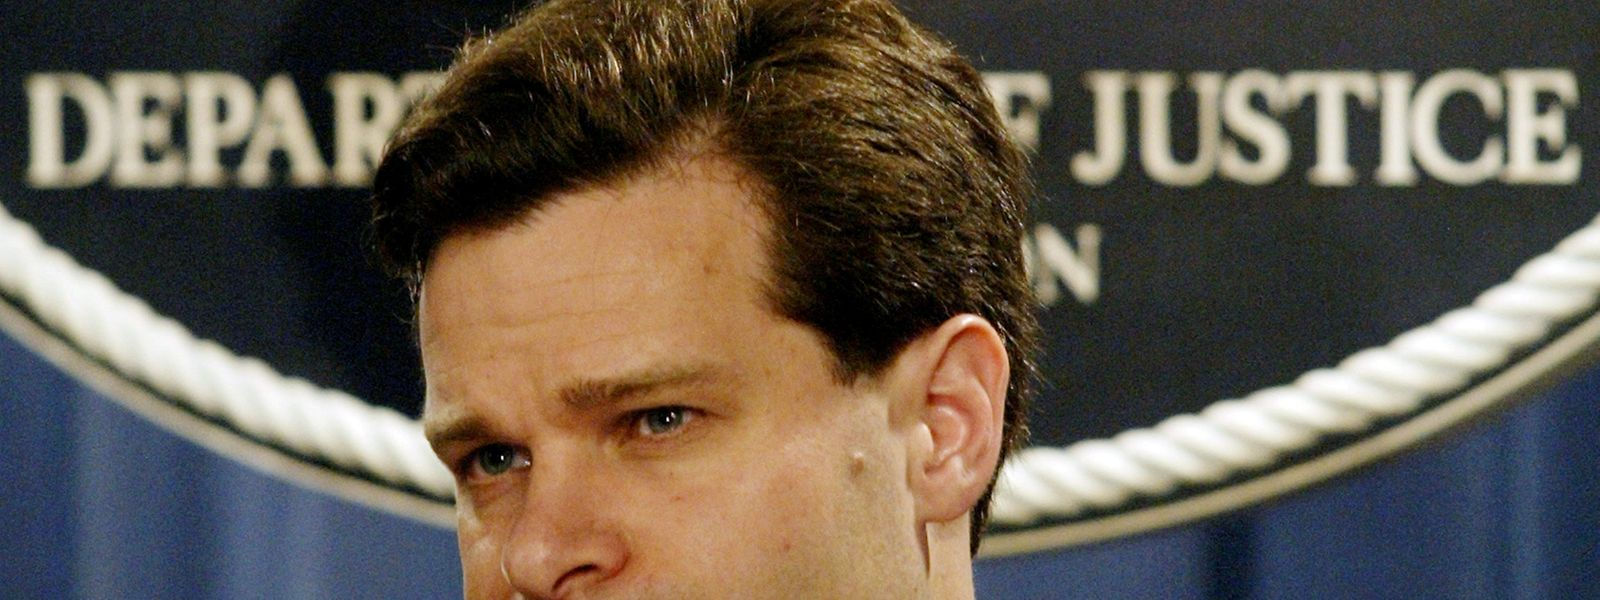 FILE PHOTO: Assistant U.S. Attorney General Christopher Wray pauses during a press conference at the Justice Department in Washington, U.S., November 4, 2003. REUTERS/Molly Riley/File Photo